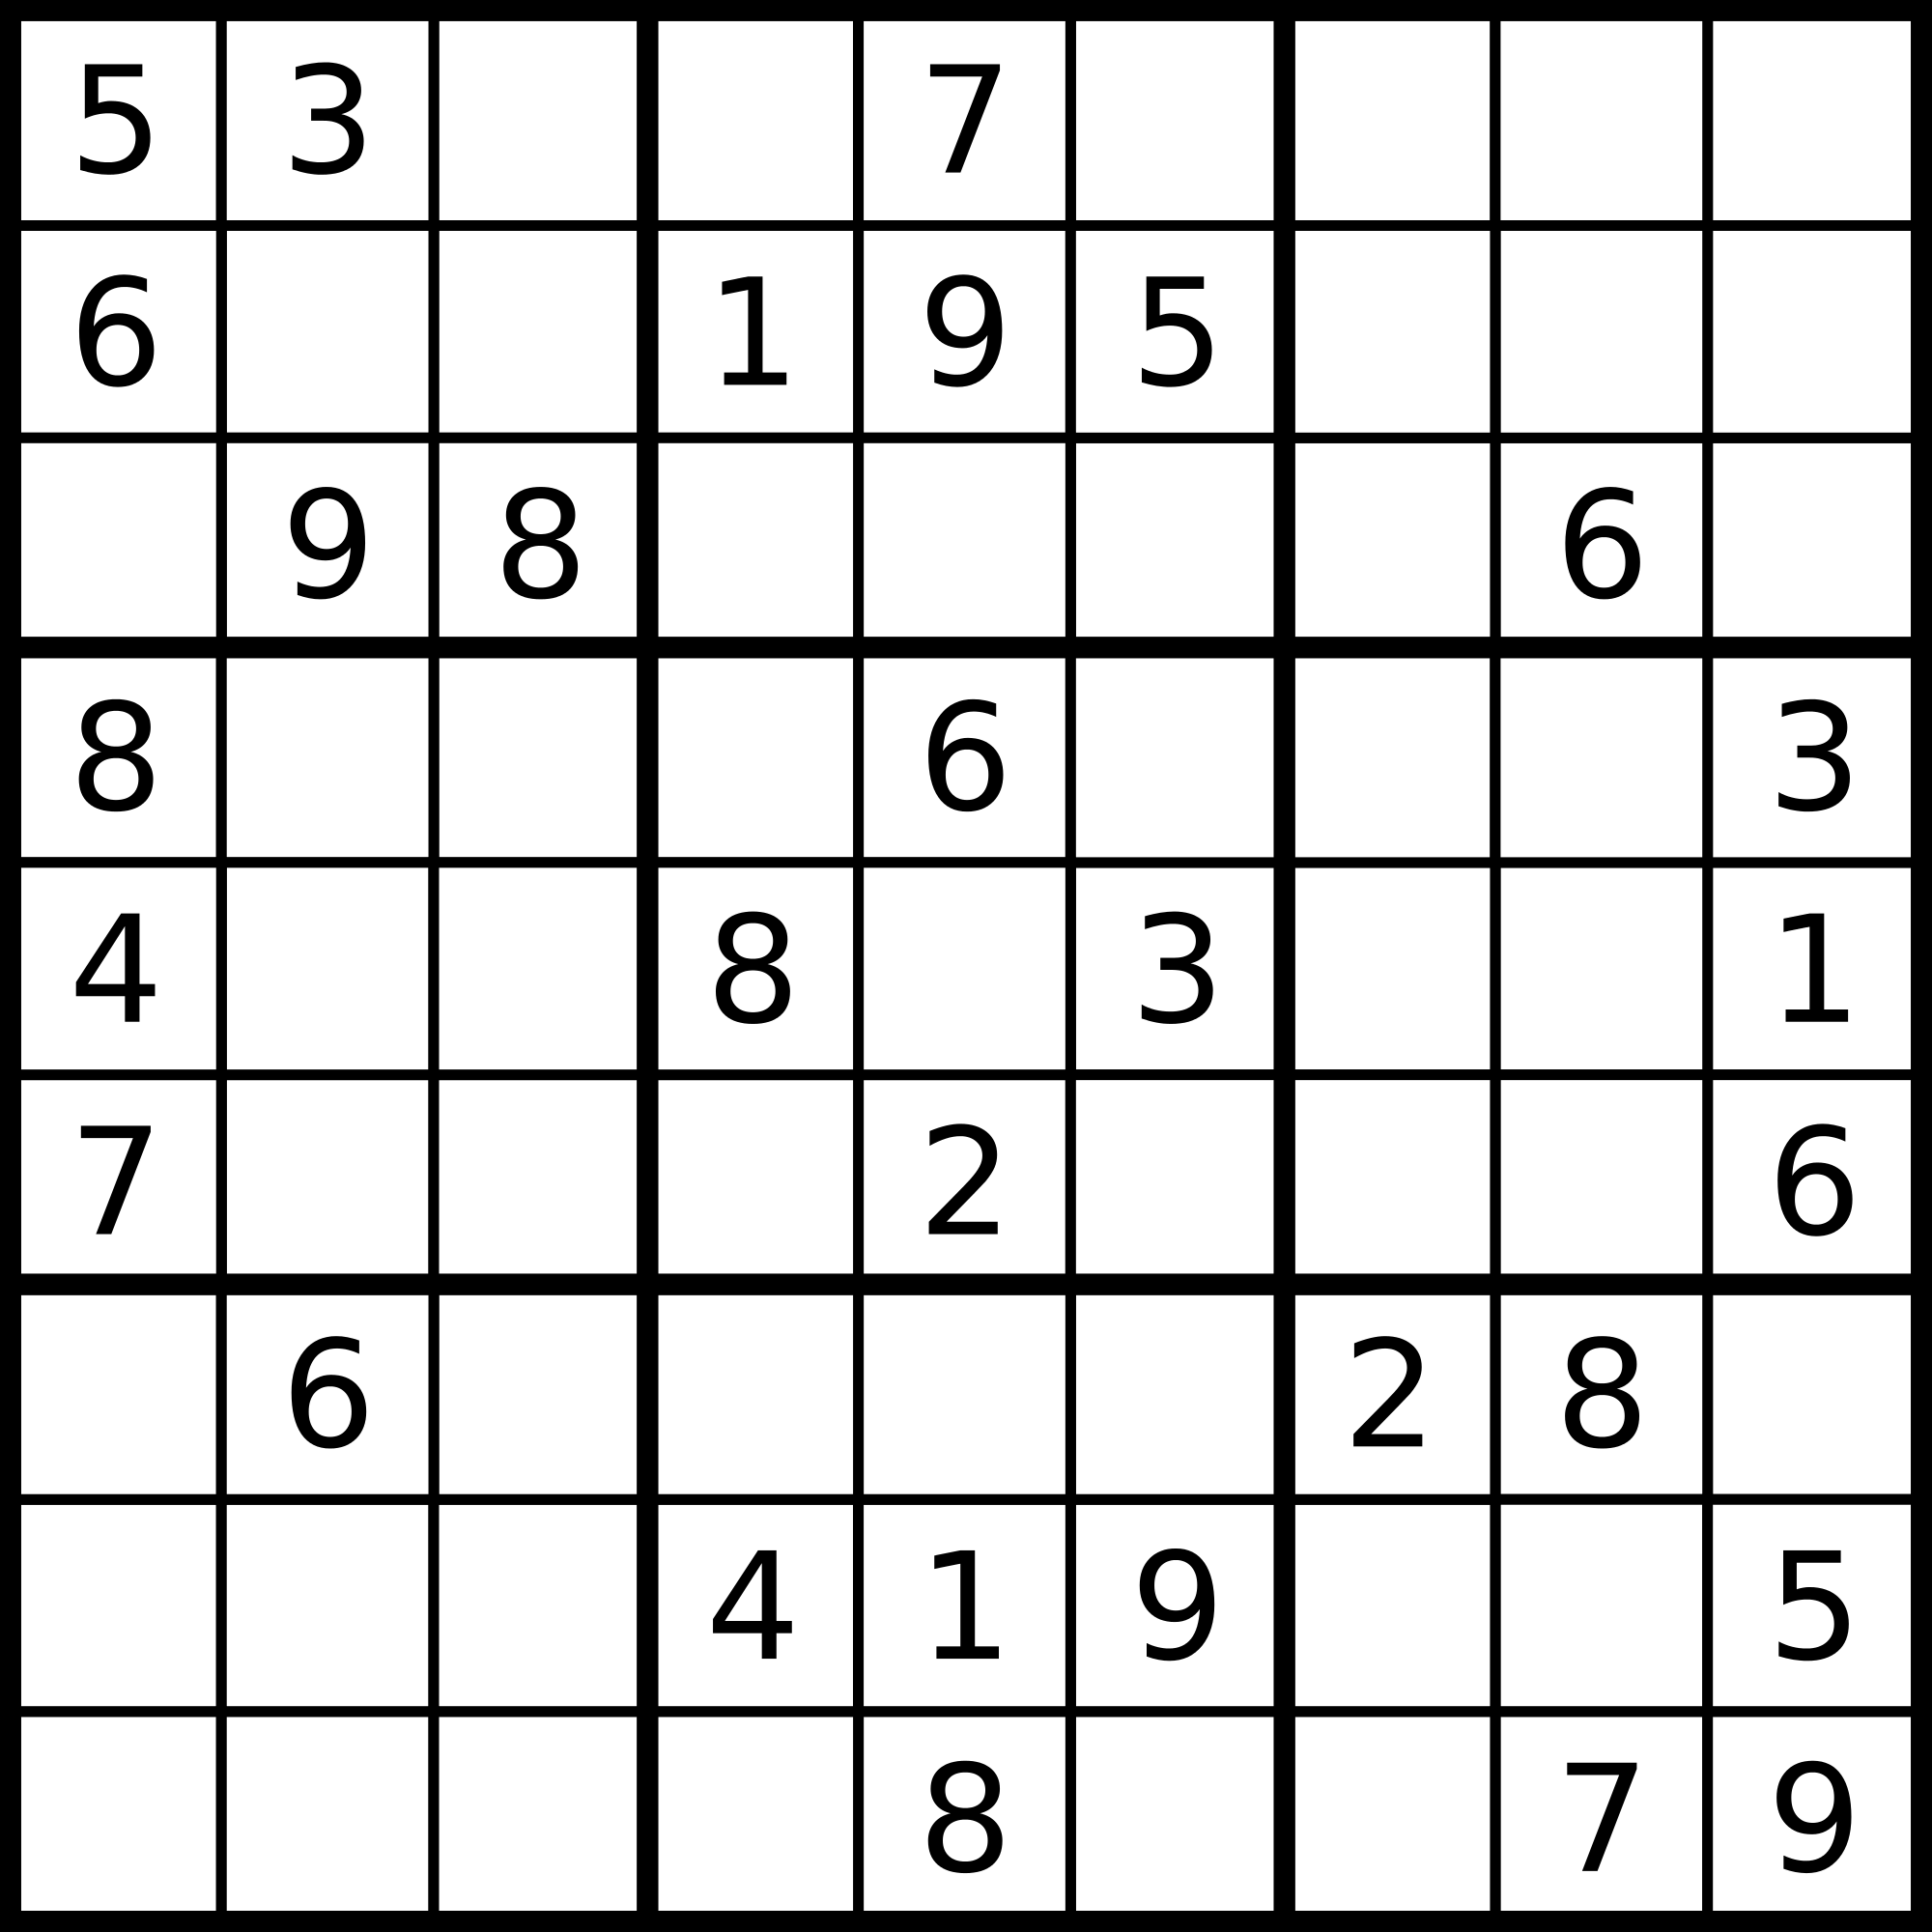 Leetcode: Check whether partially filled sudoku is valid